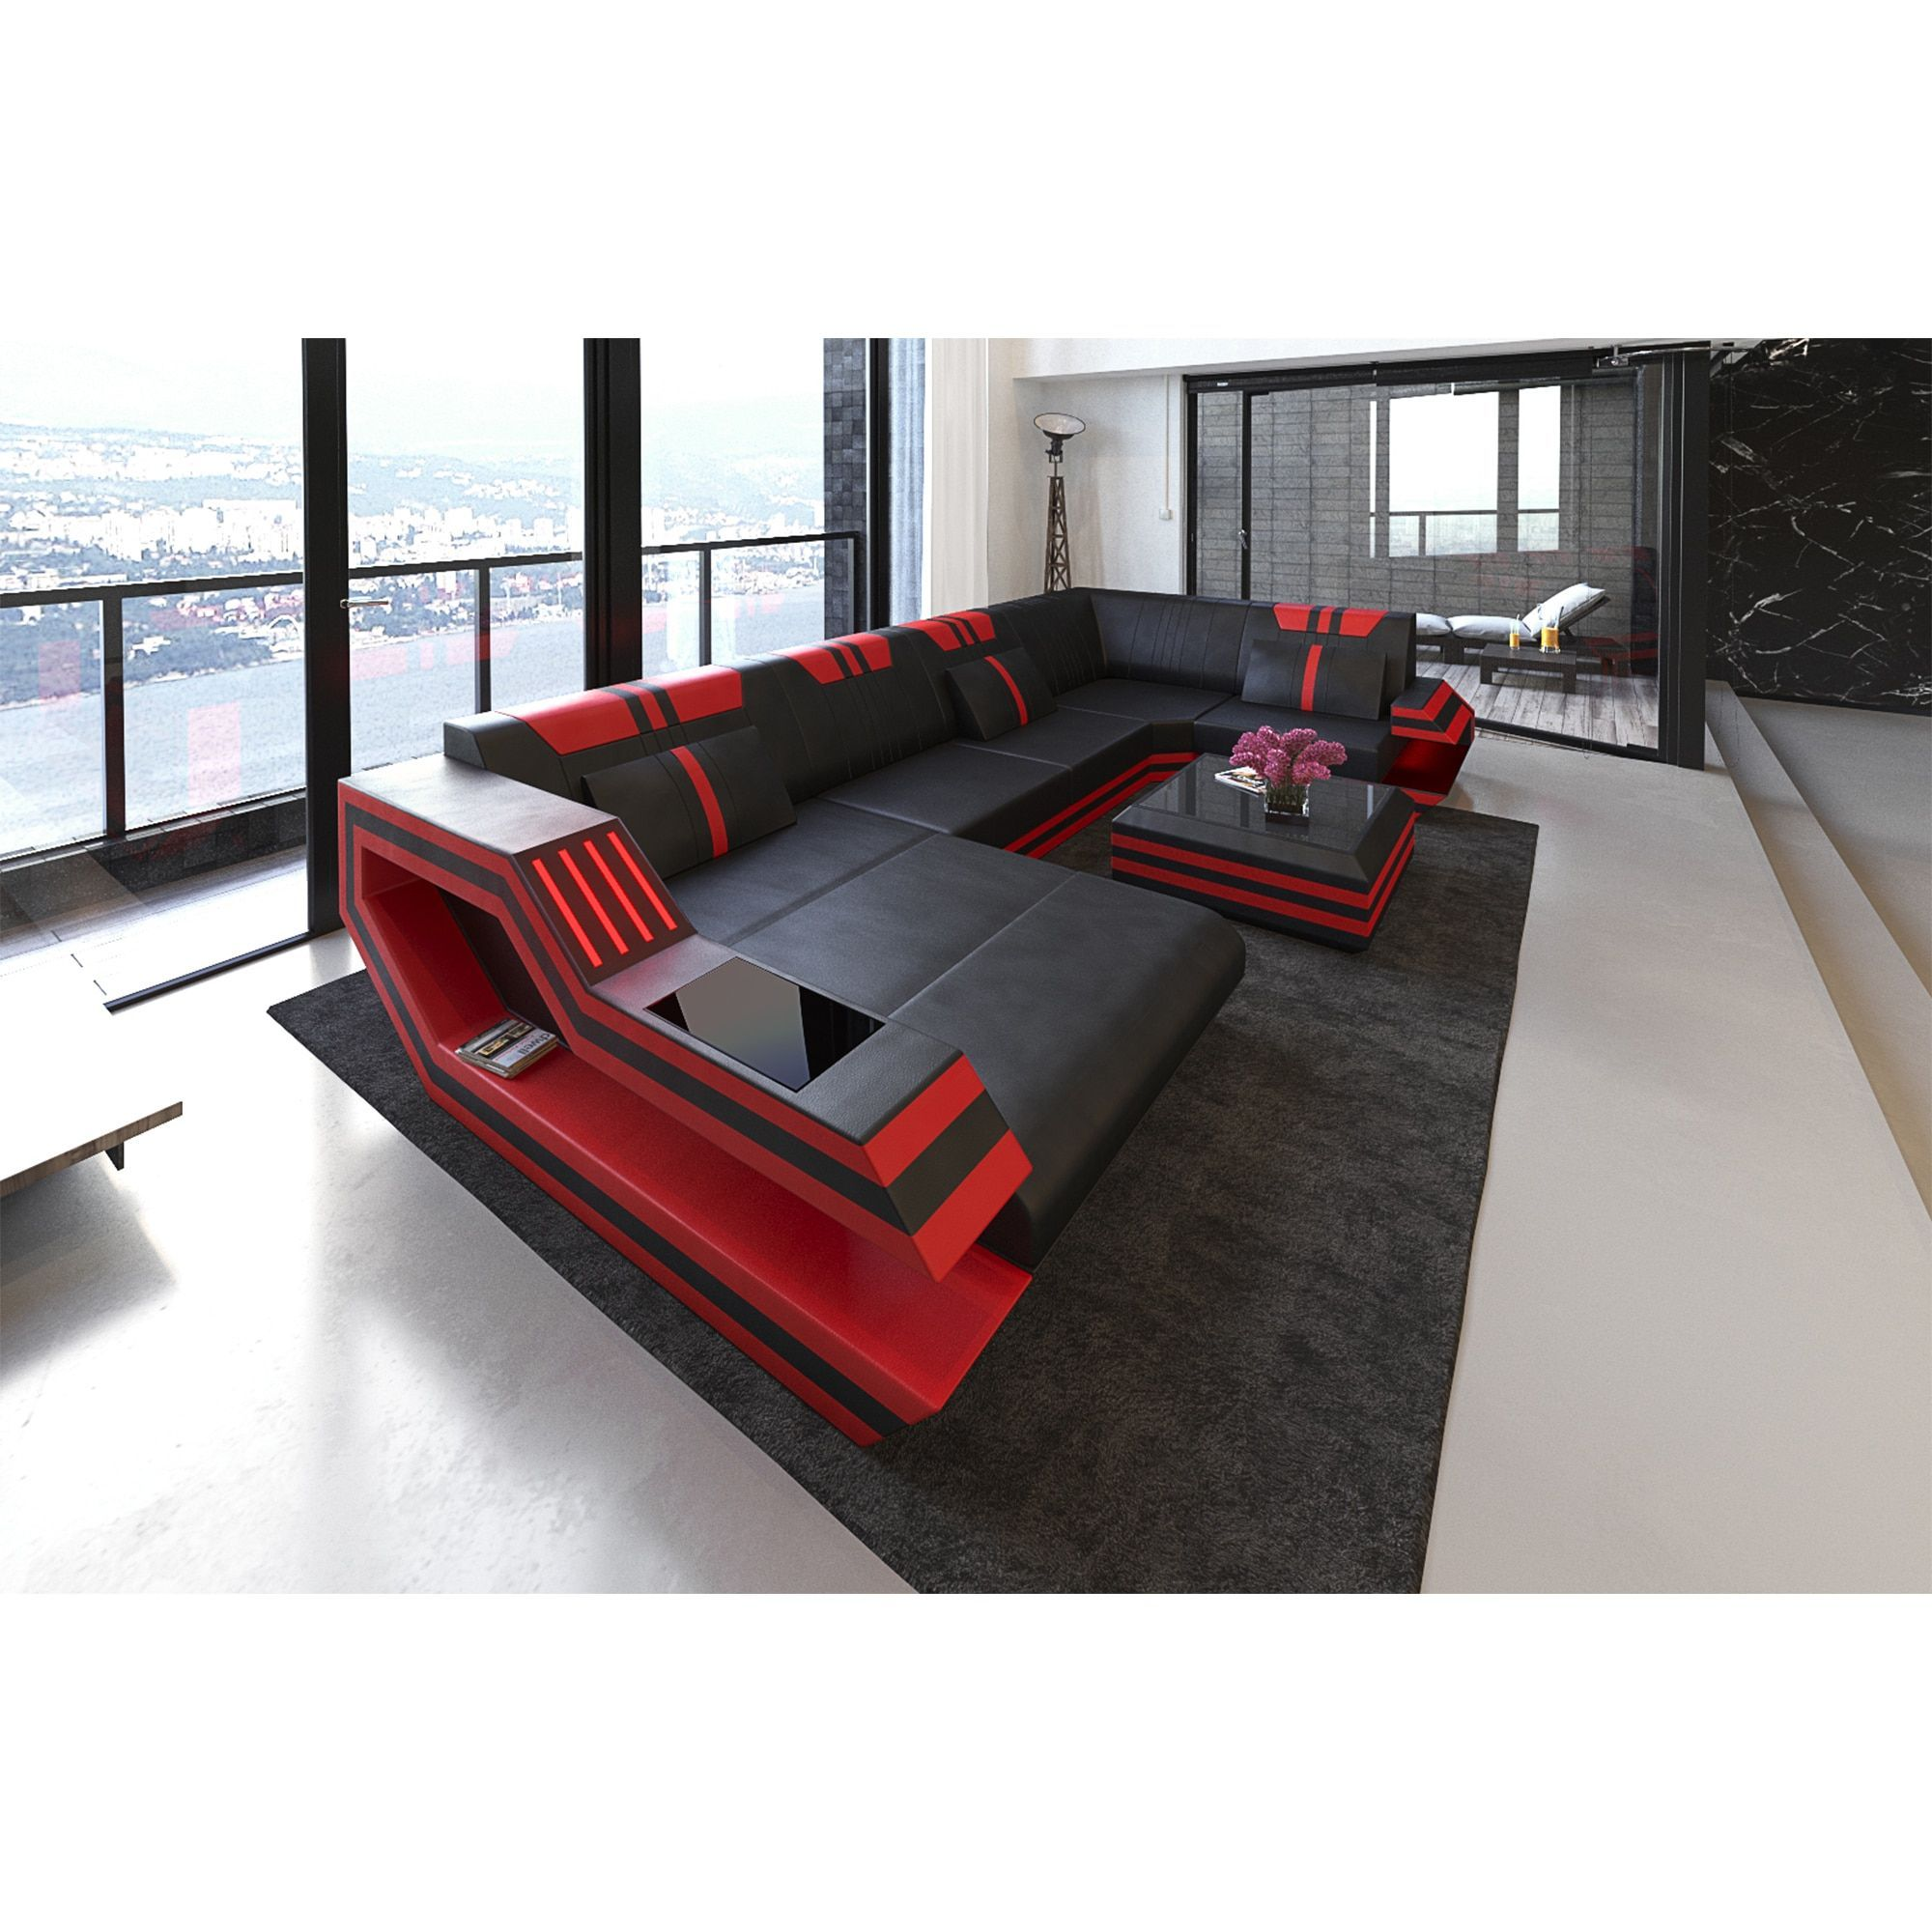 Sofa Jacksonville Xl Sectional Sofa Hollywood With Led Lights And Usb Sectional Sofa